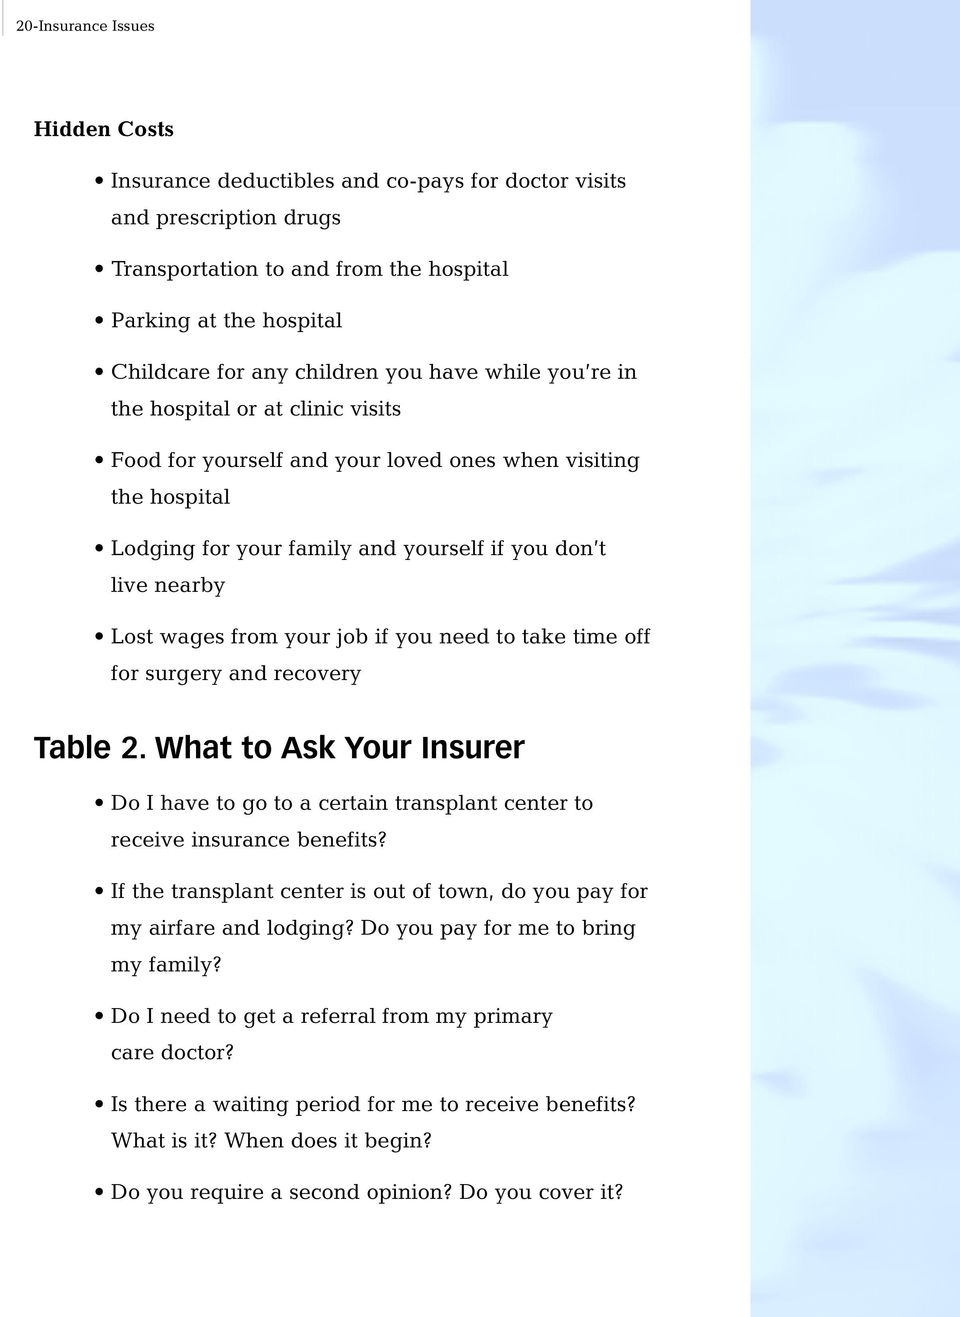 from your job if you need to take time off for surgery and recovery Table 2. What to Ask Your Insurer Do I have to go to a certain transplant center to receive insurance benefits?